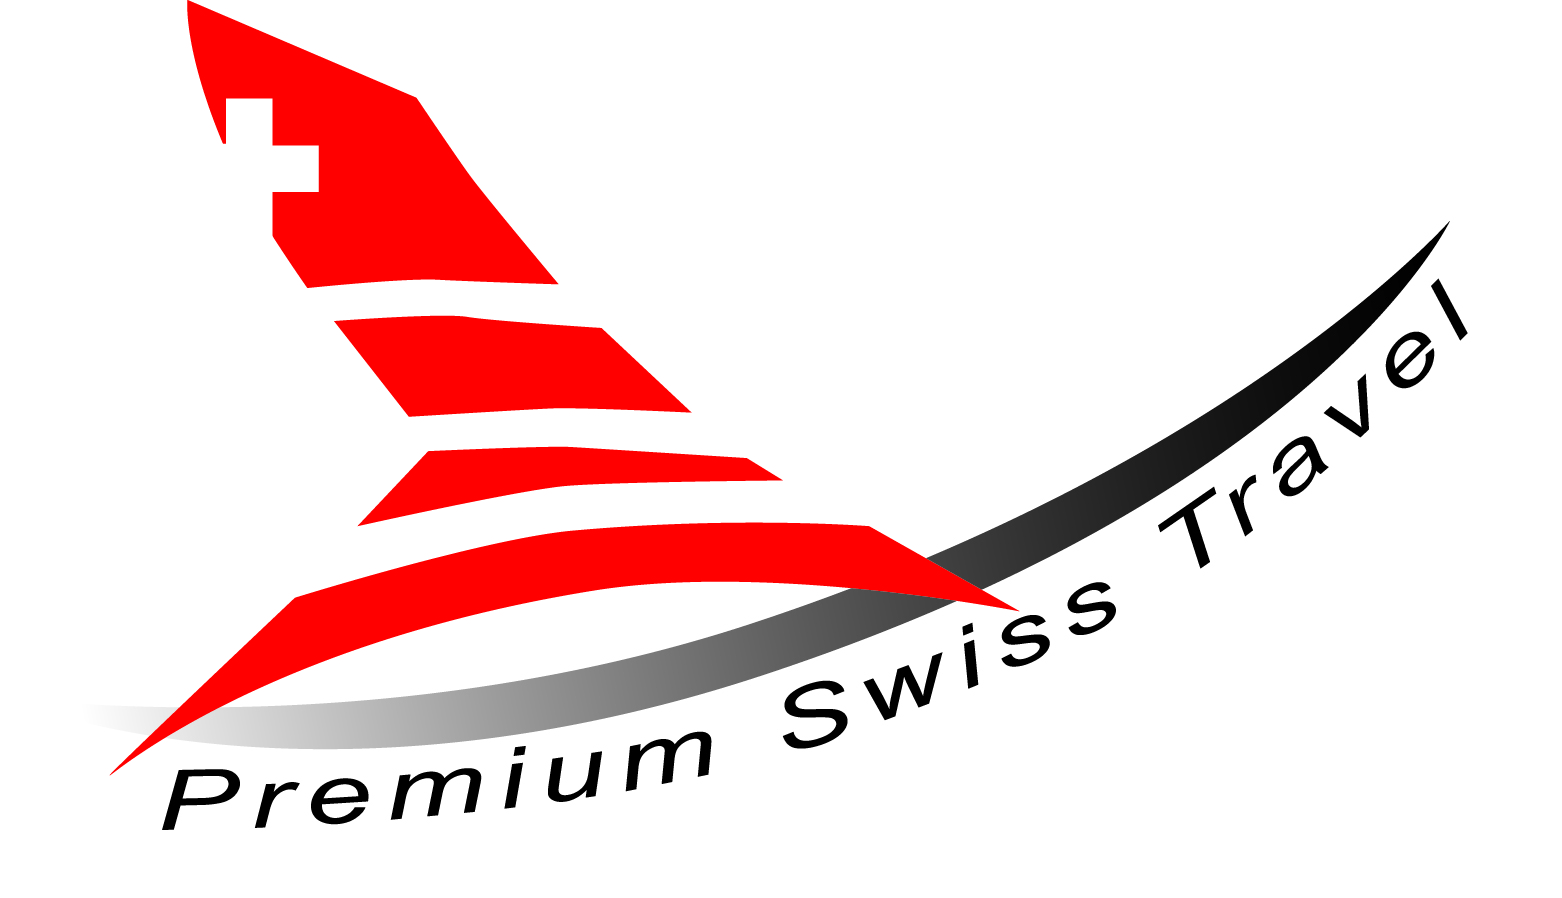 Premium Swiss Travel | 22 Days Atlantic cruise - Premium Swiss Travel